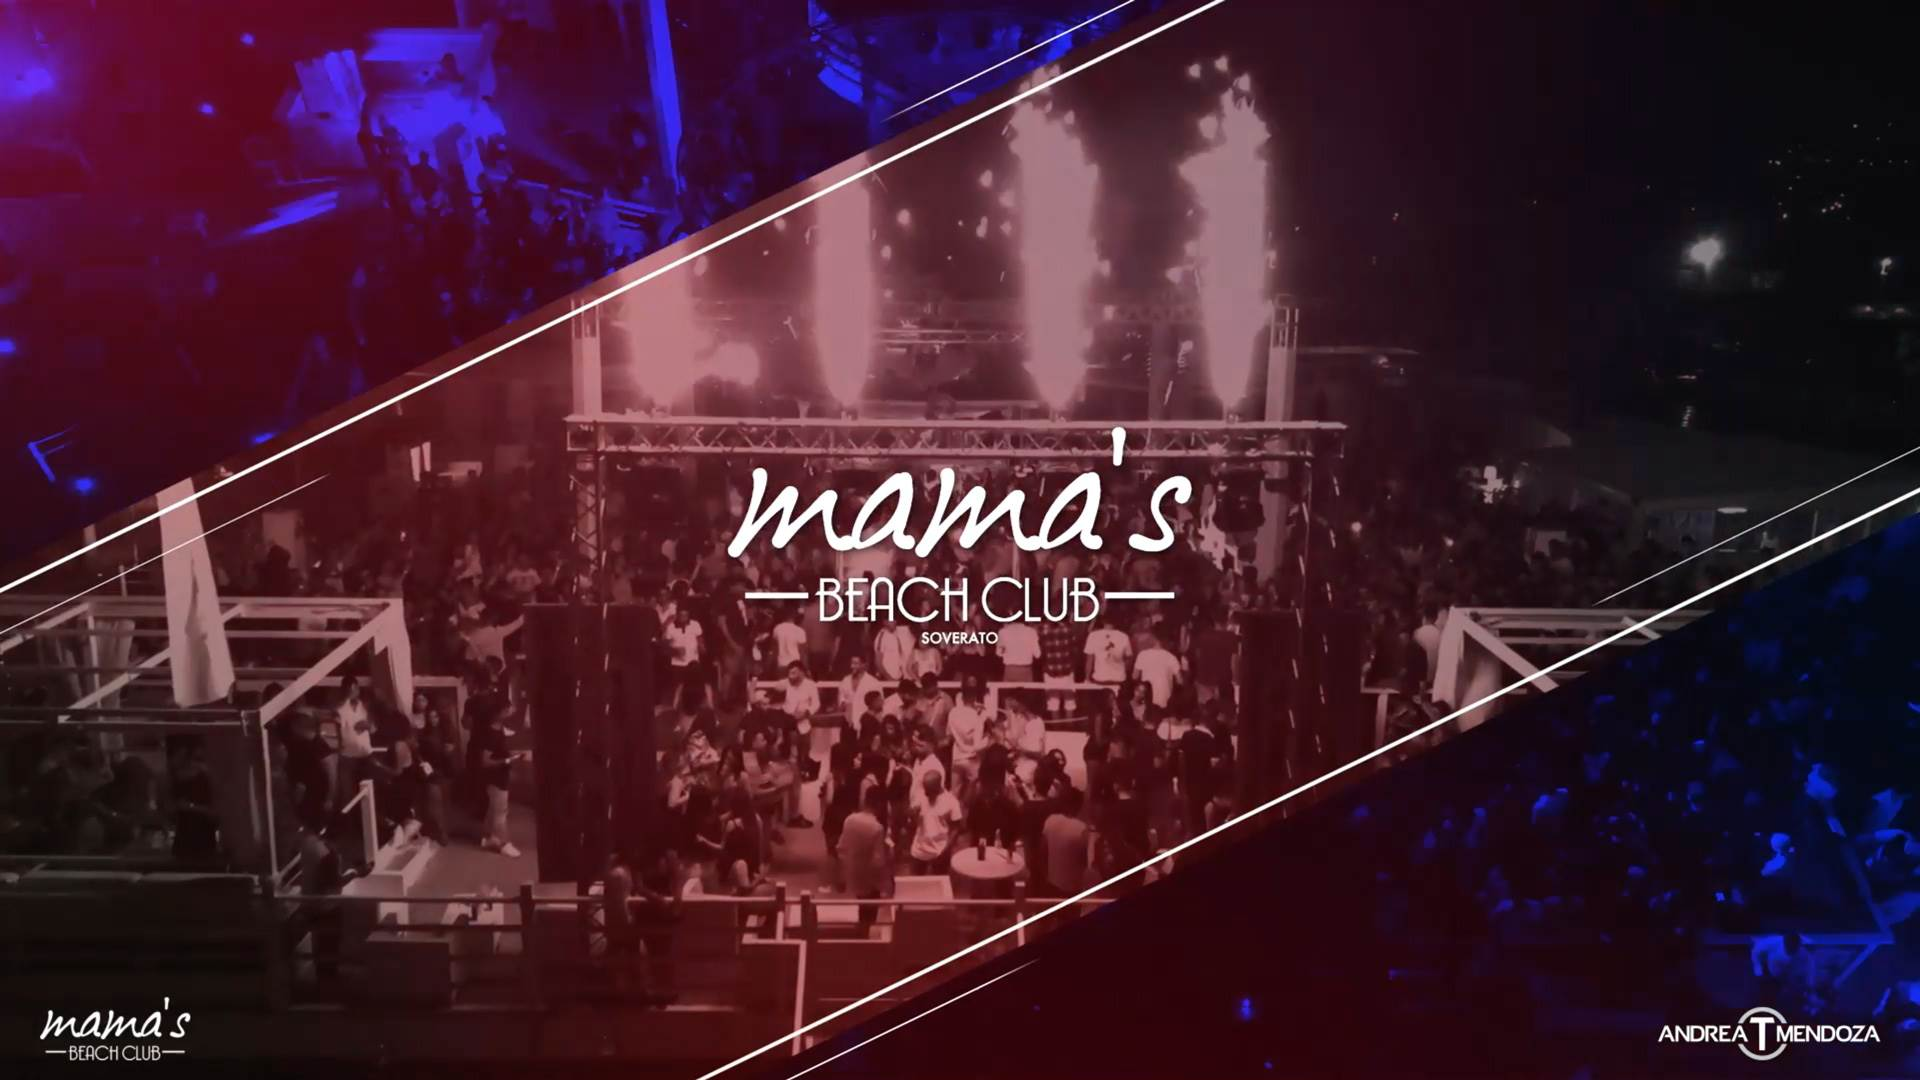 Andrea T Mendoza Keep on Dancing, Mama's Beach Club Summer 2019